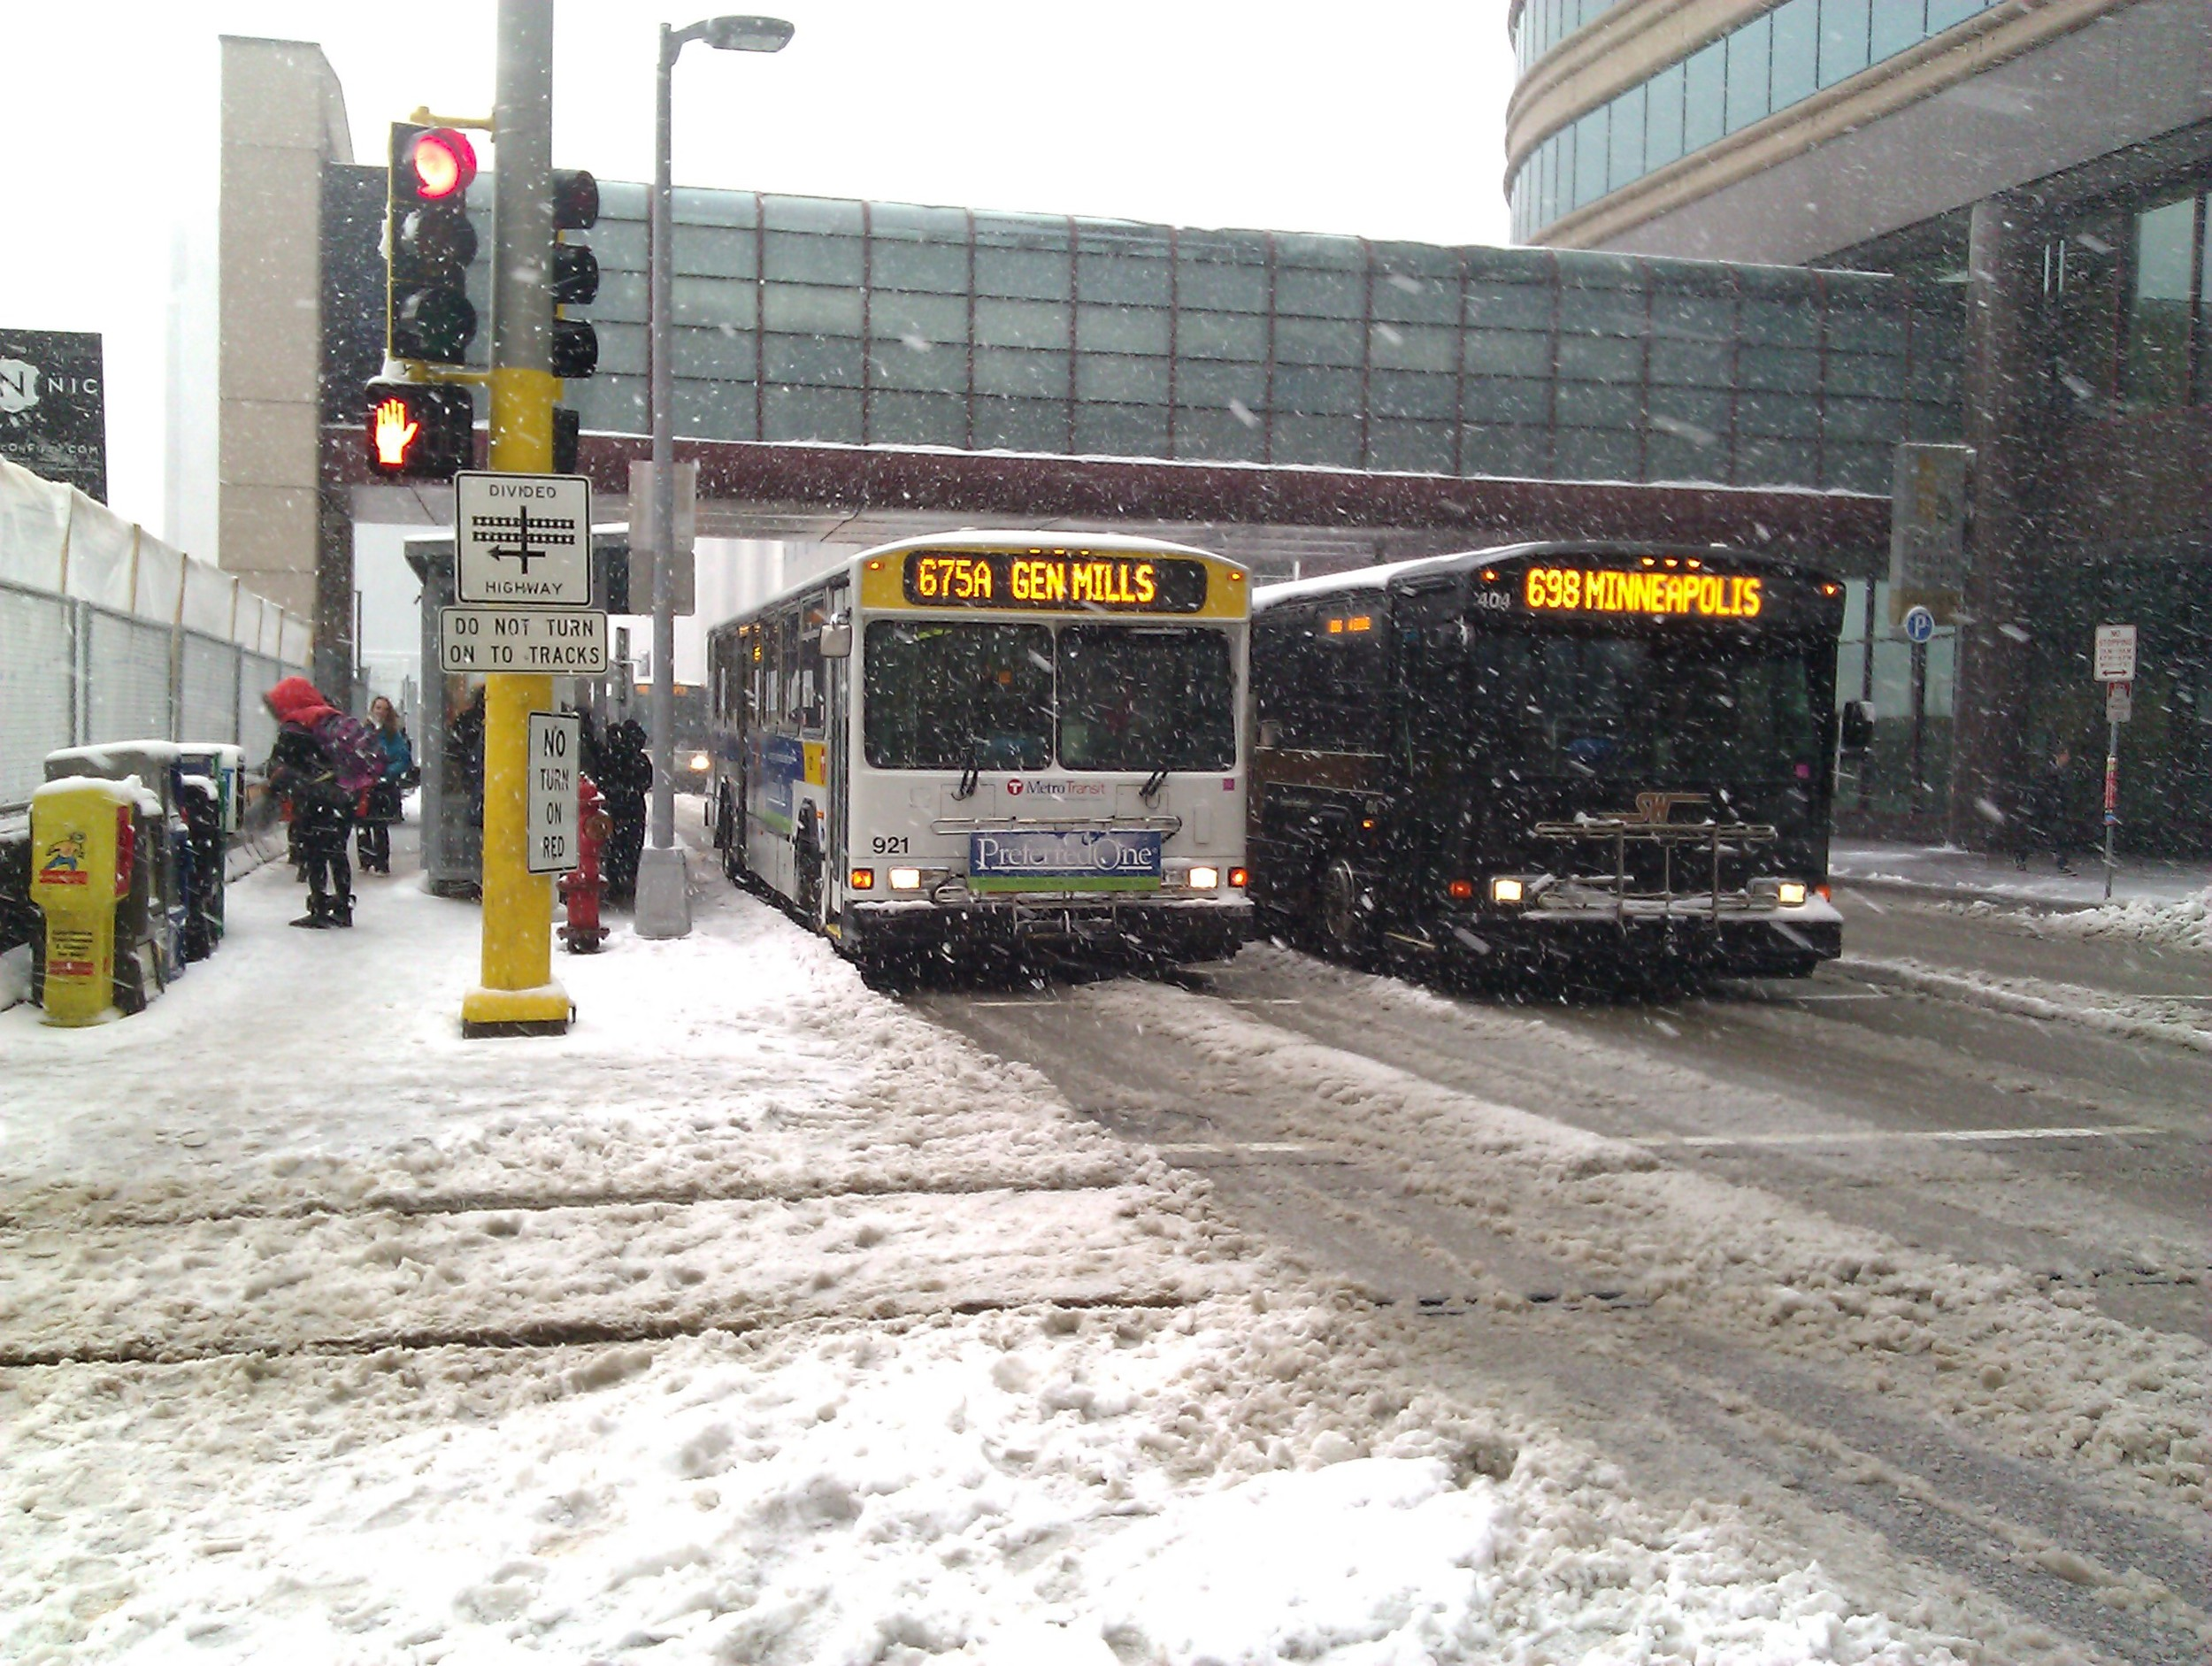 Express buses brave the late April snow.